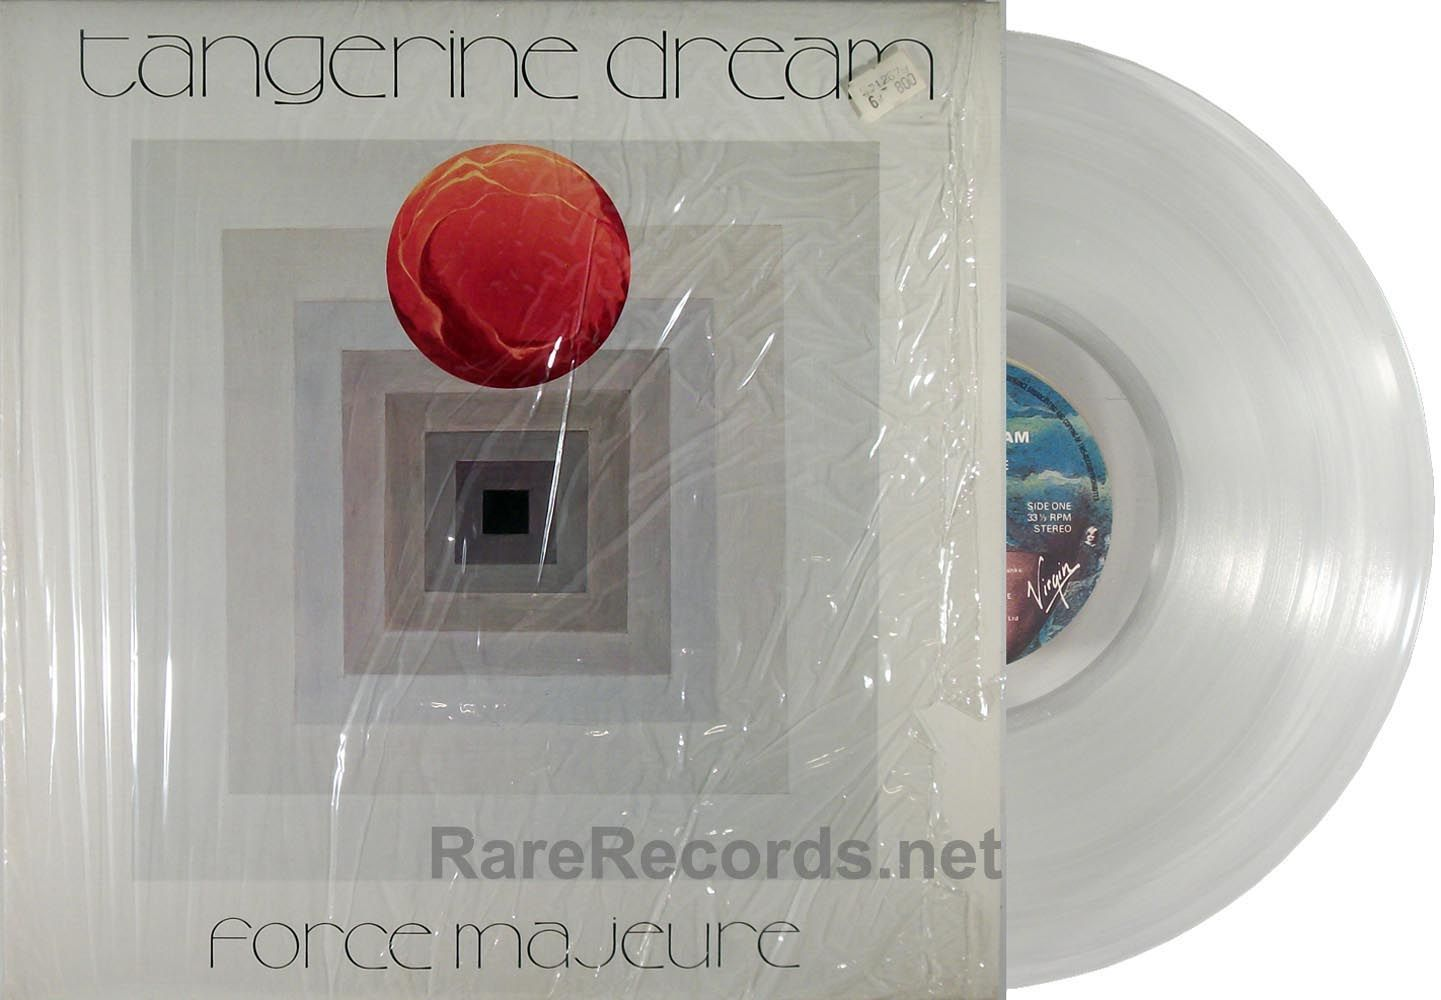 Tangerine Dream Force Majeure Virgin 1979 First Edition Uk Copies Of This Album Were Pressed On Clear Vinyl If You Want T Clear Vinyl Vinyl New Age Music